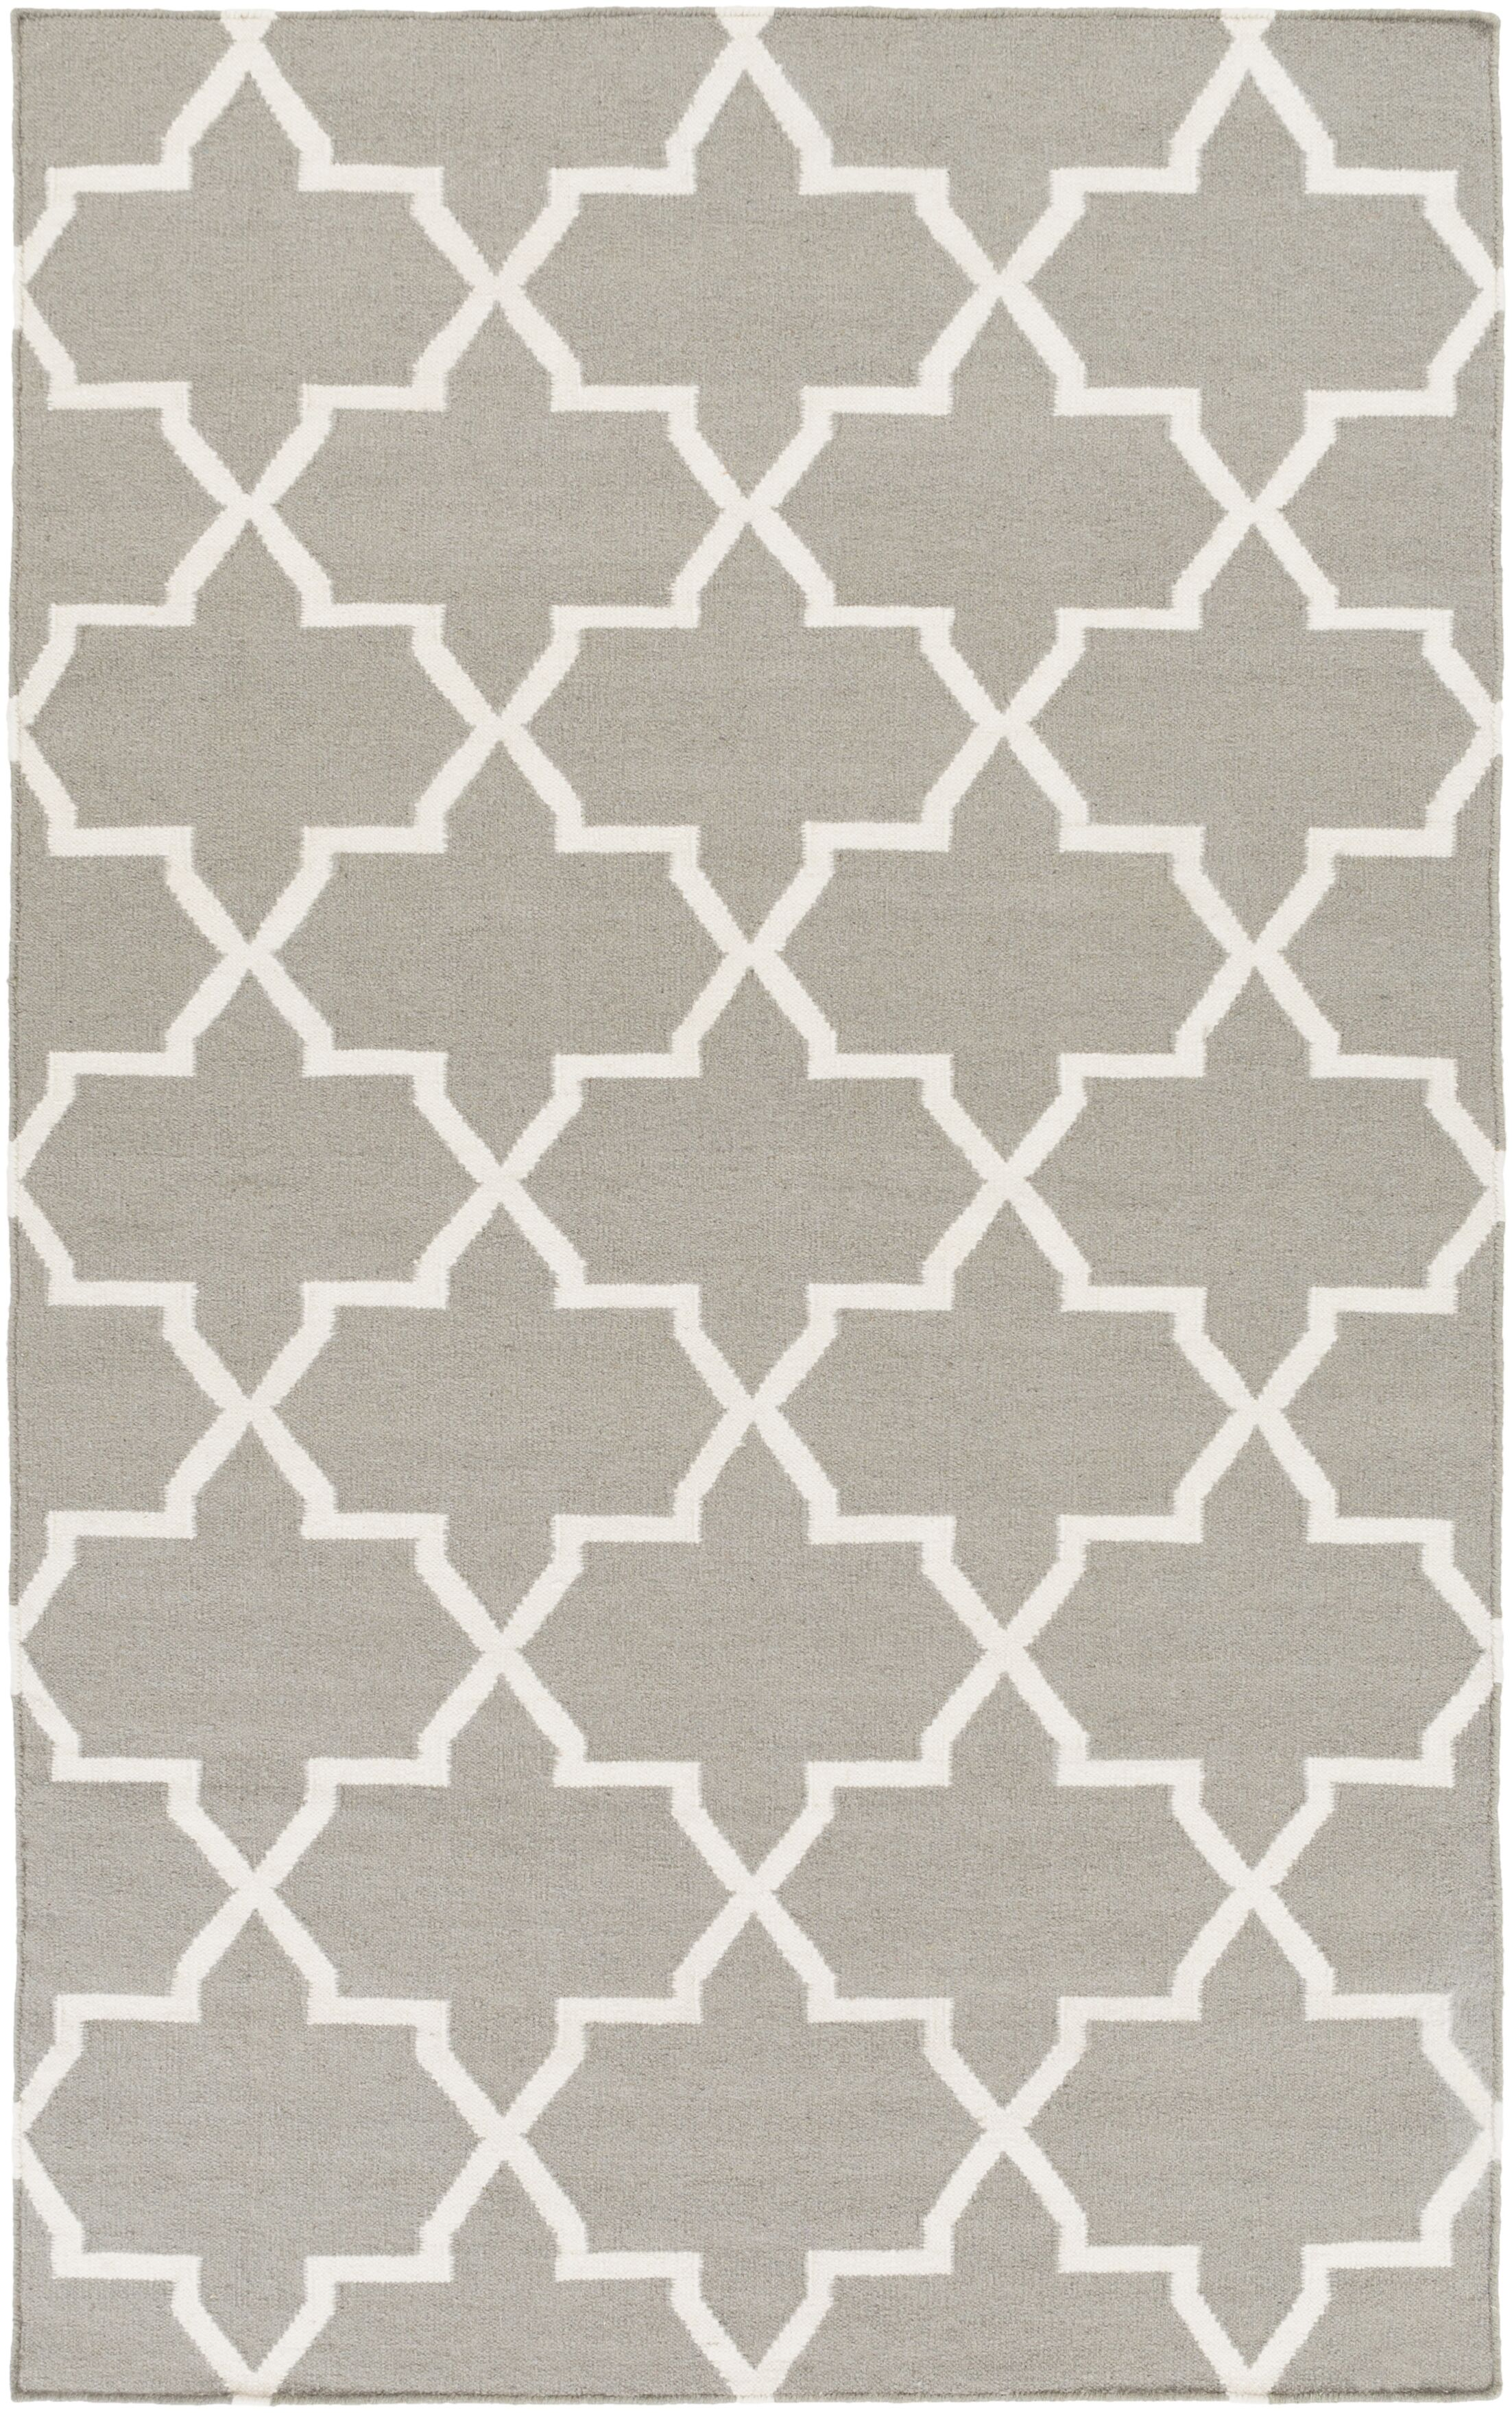 Bangor Charcoal Geometric Area Rug Rug Size: Rectangle 10' x 14'